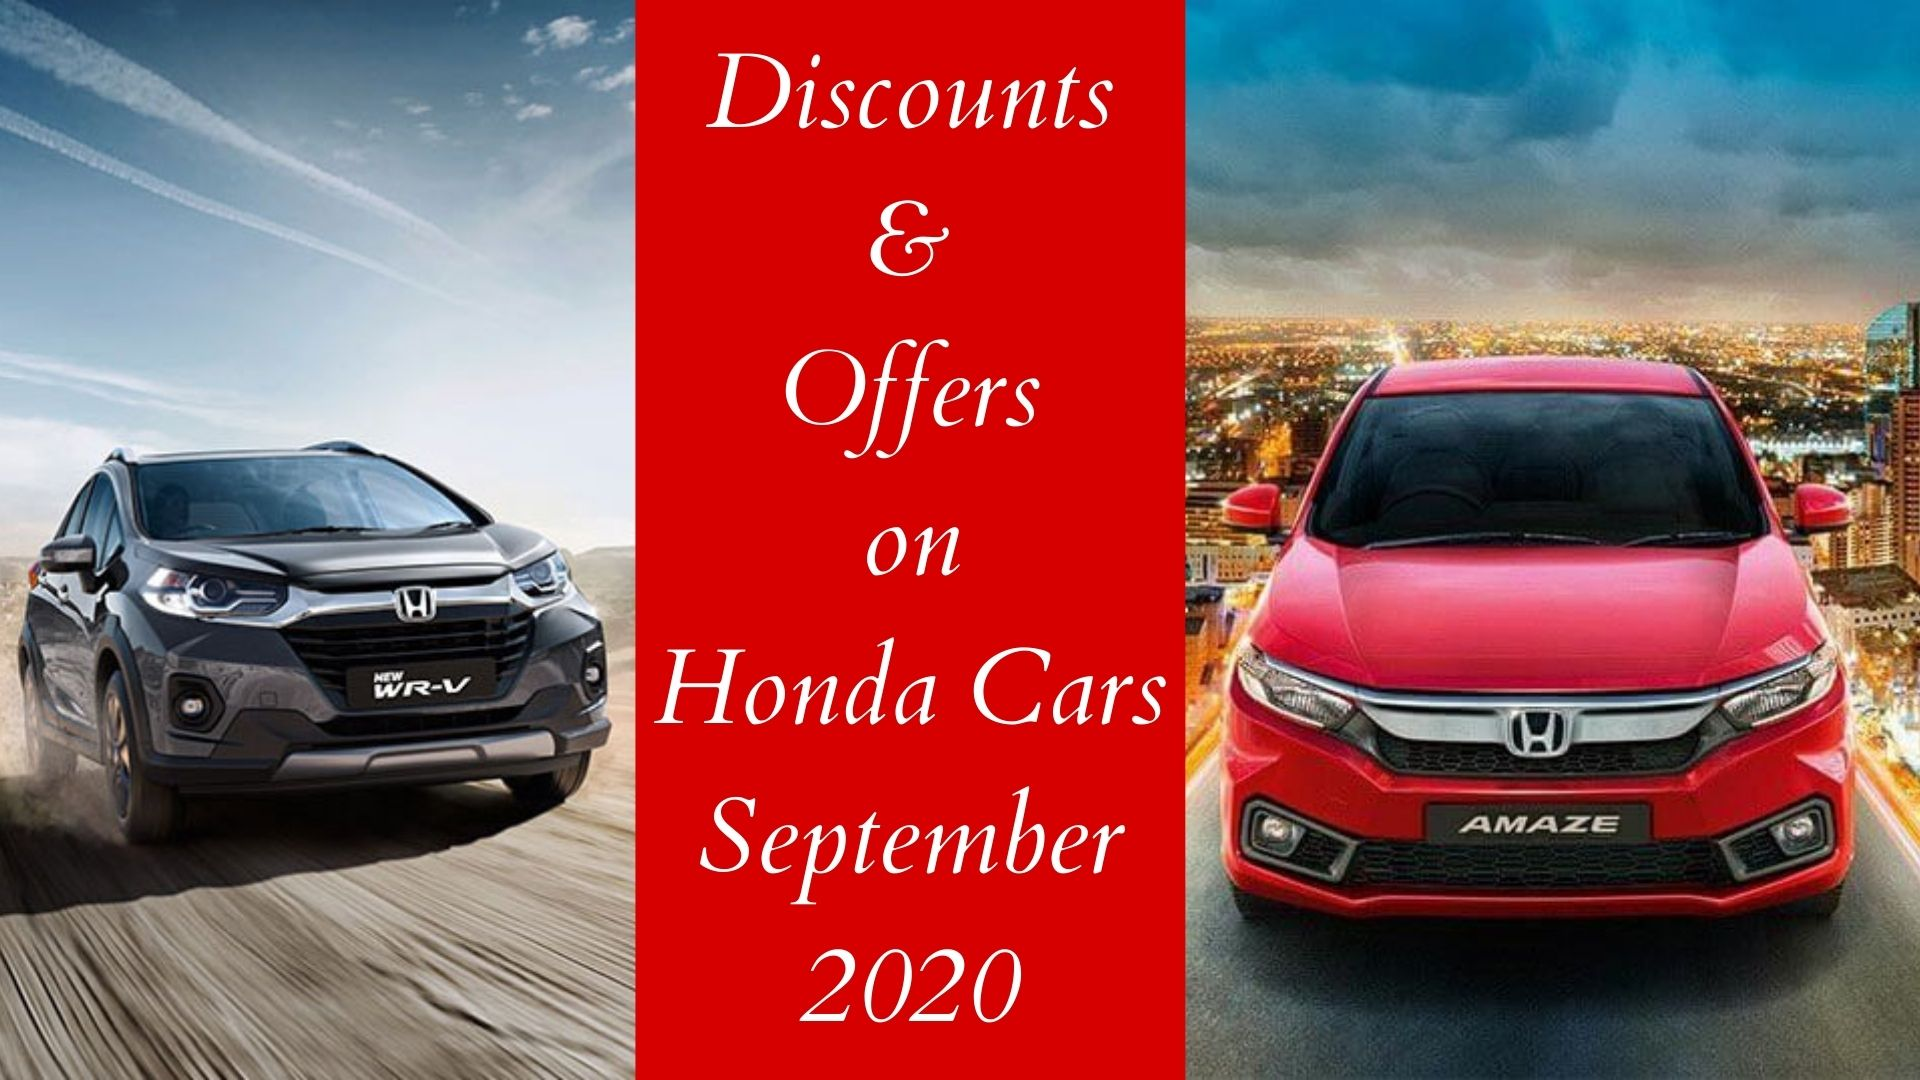 Discounts & Offers on Honda Cars September 2020